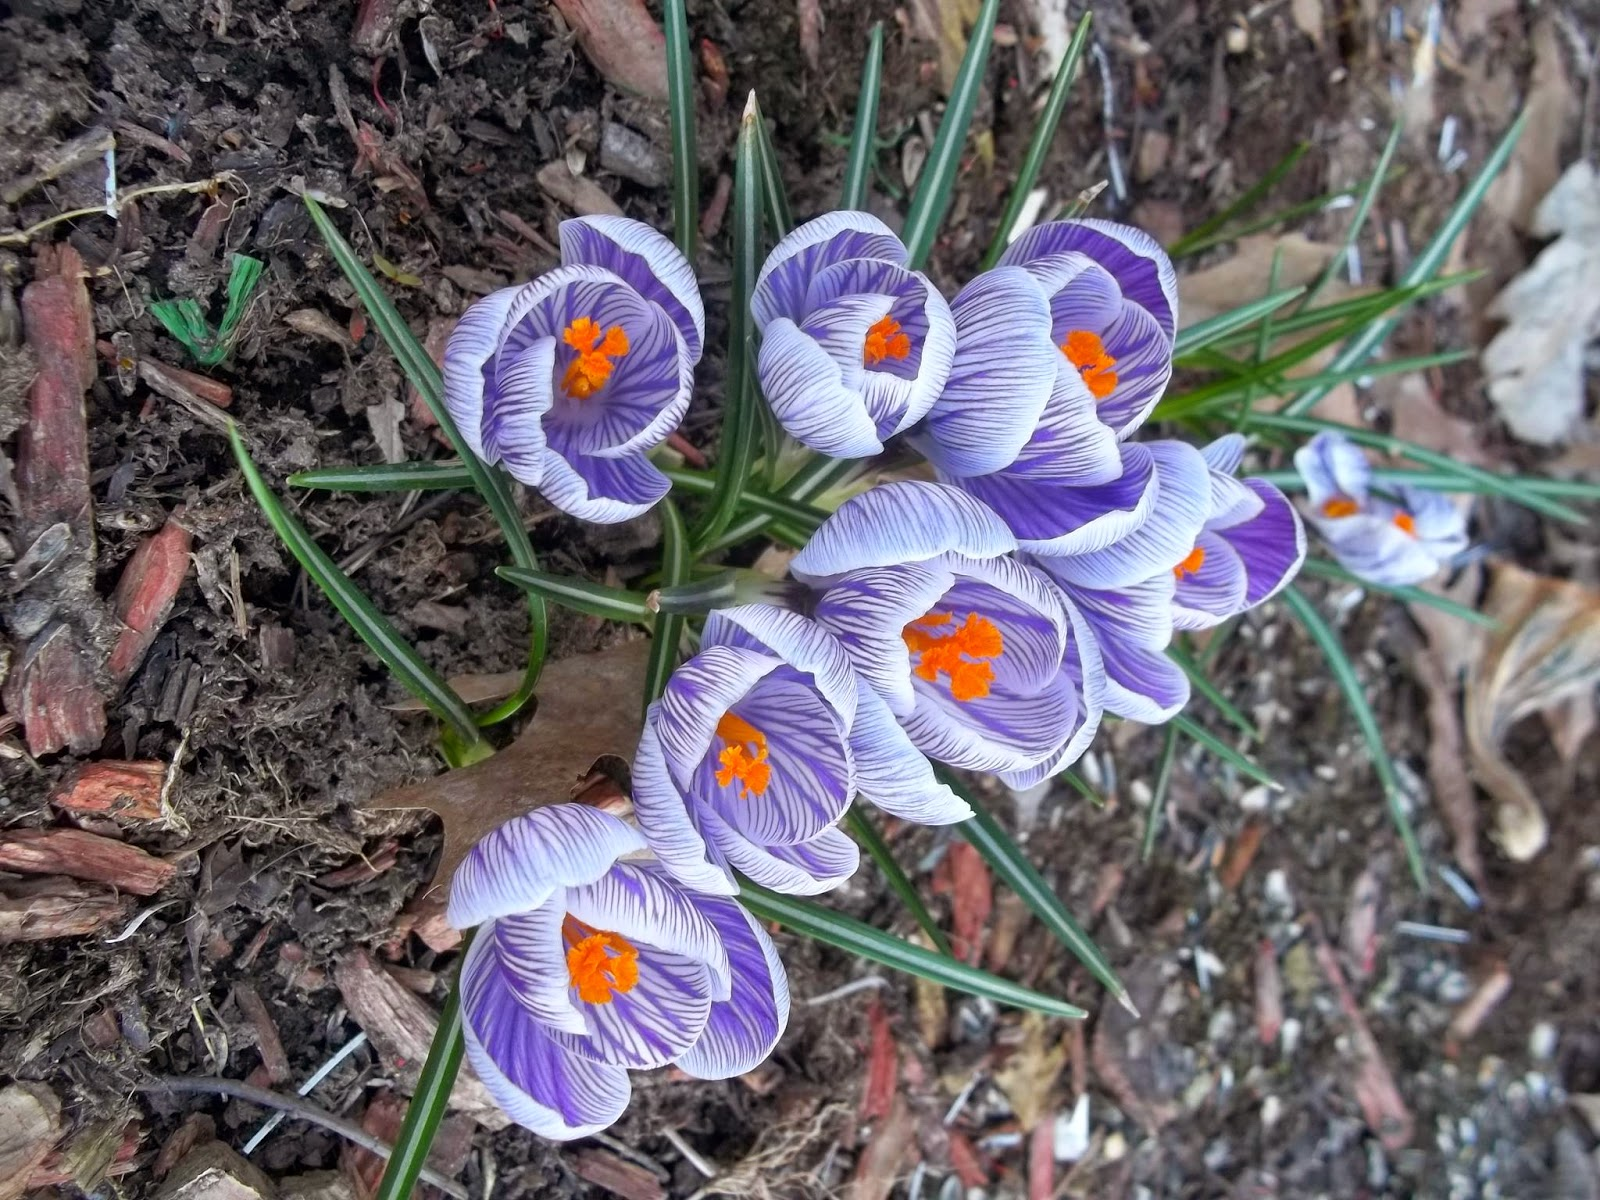 Free Purple and White Crocus Flower Photo Image.